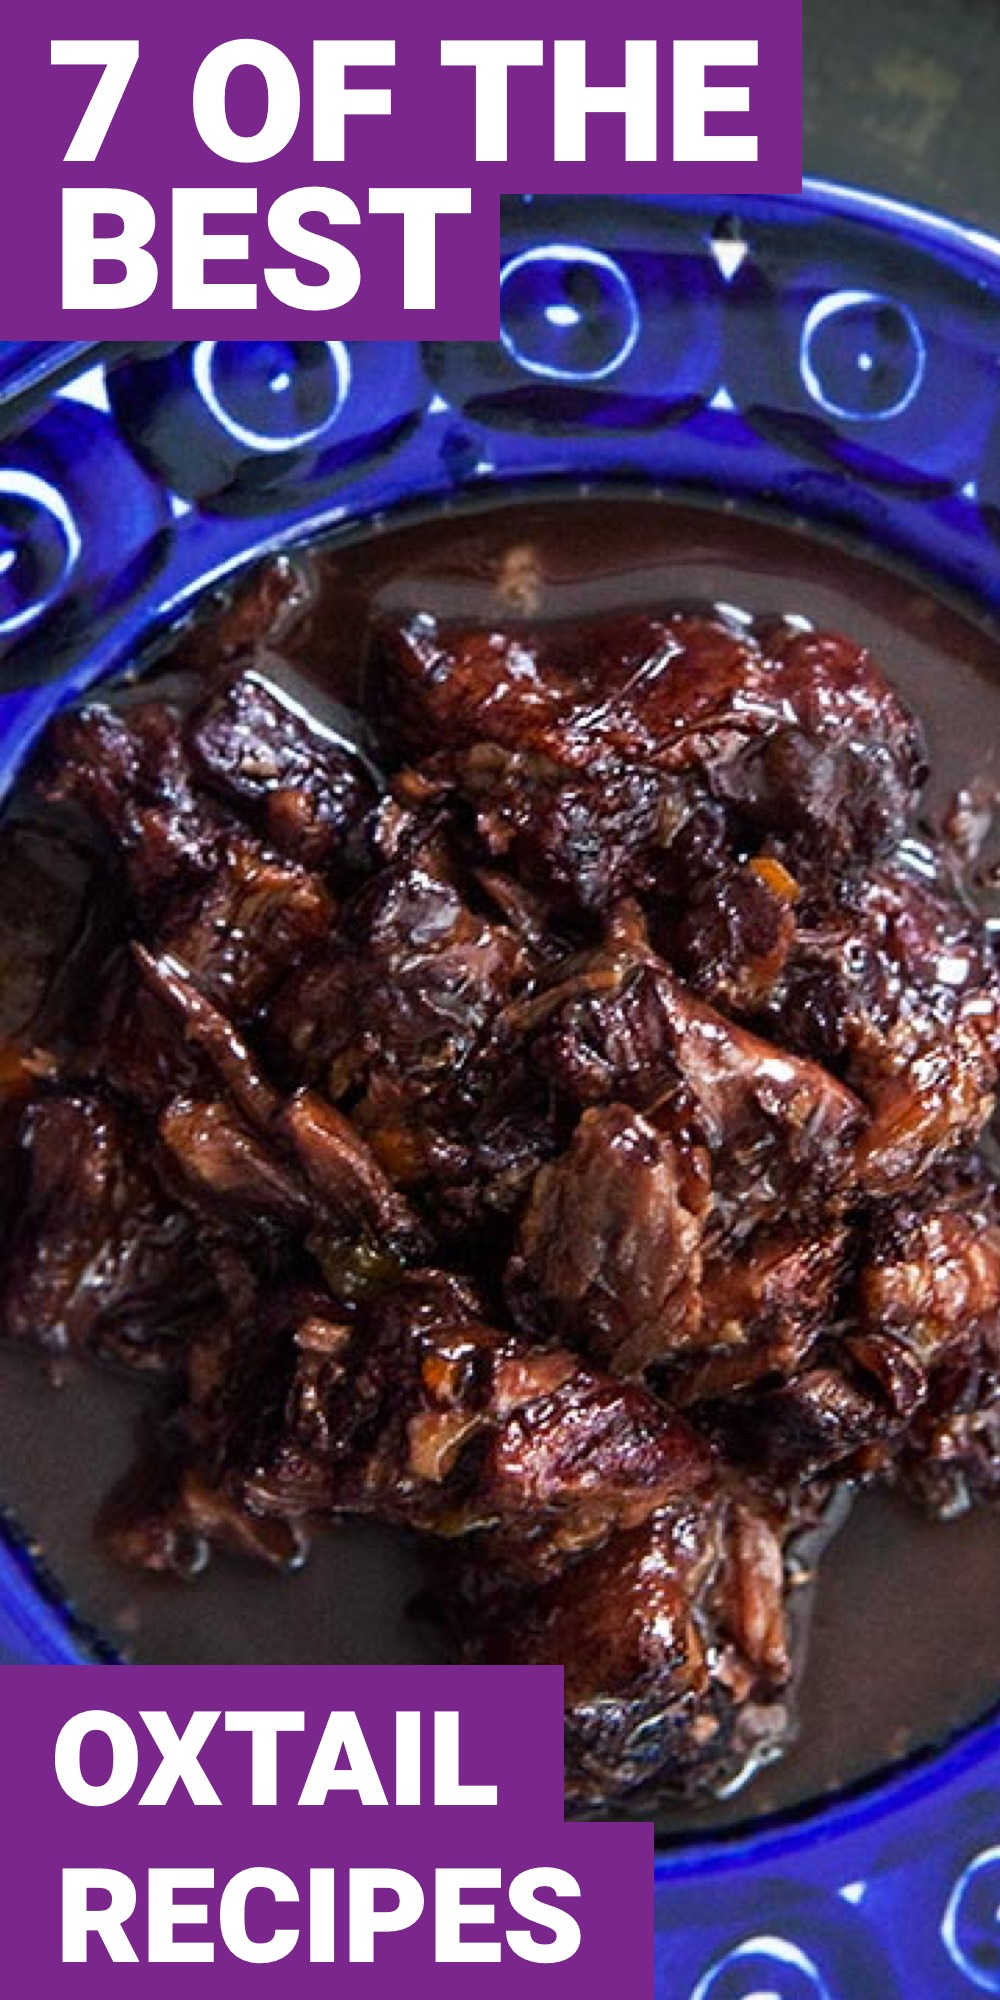 If you want new foods in your life, here are 7 oxtail recipes that you really need to try.